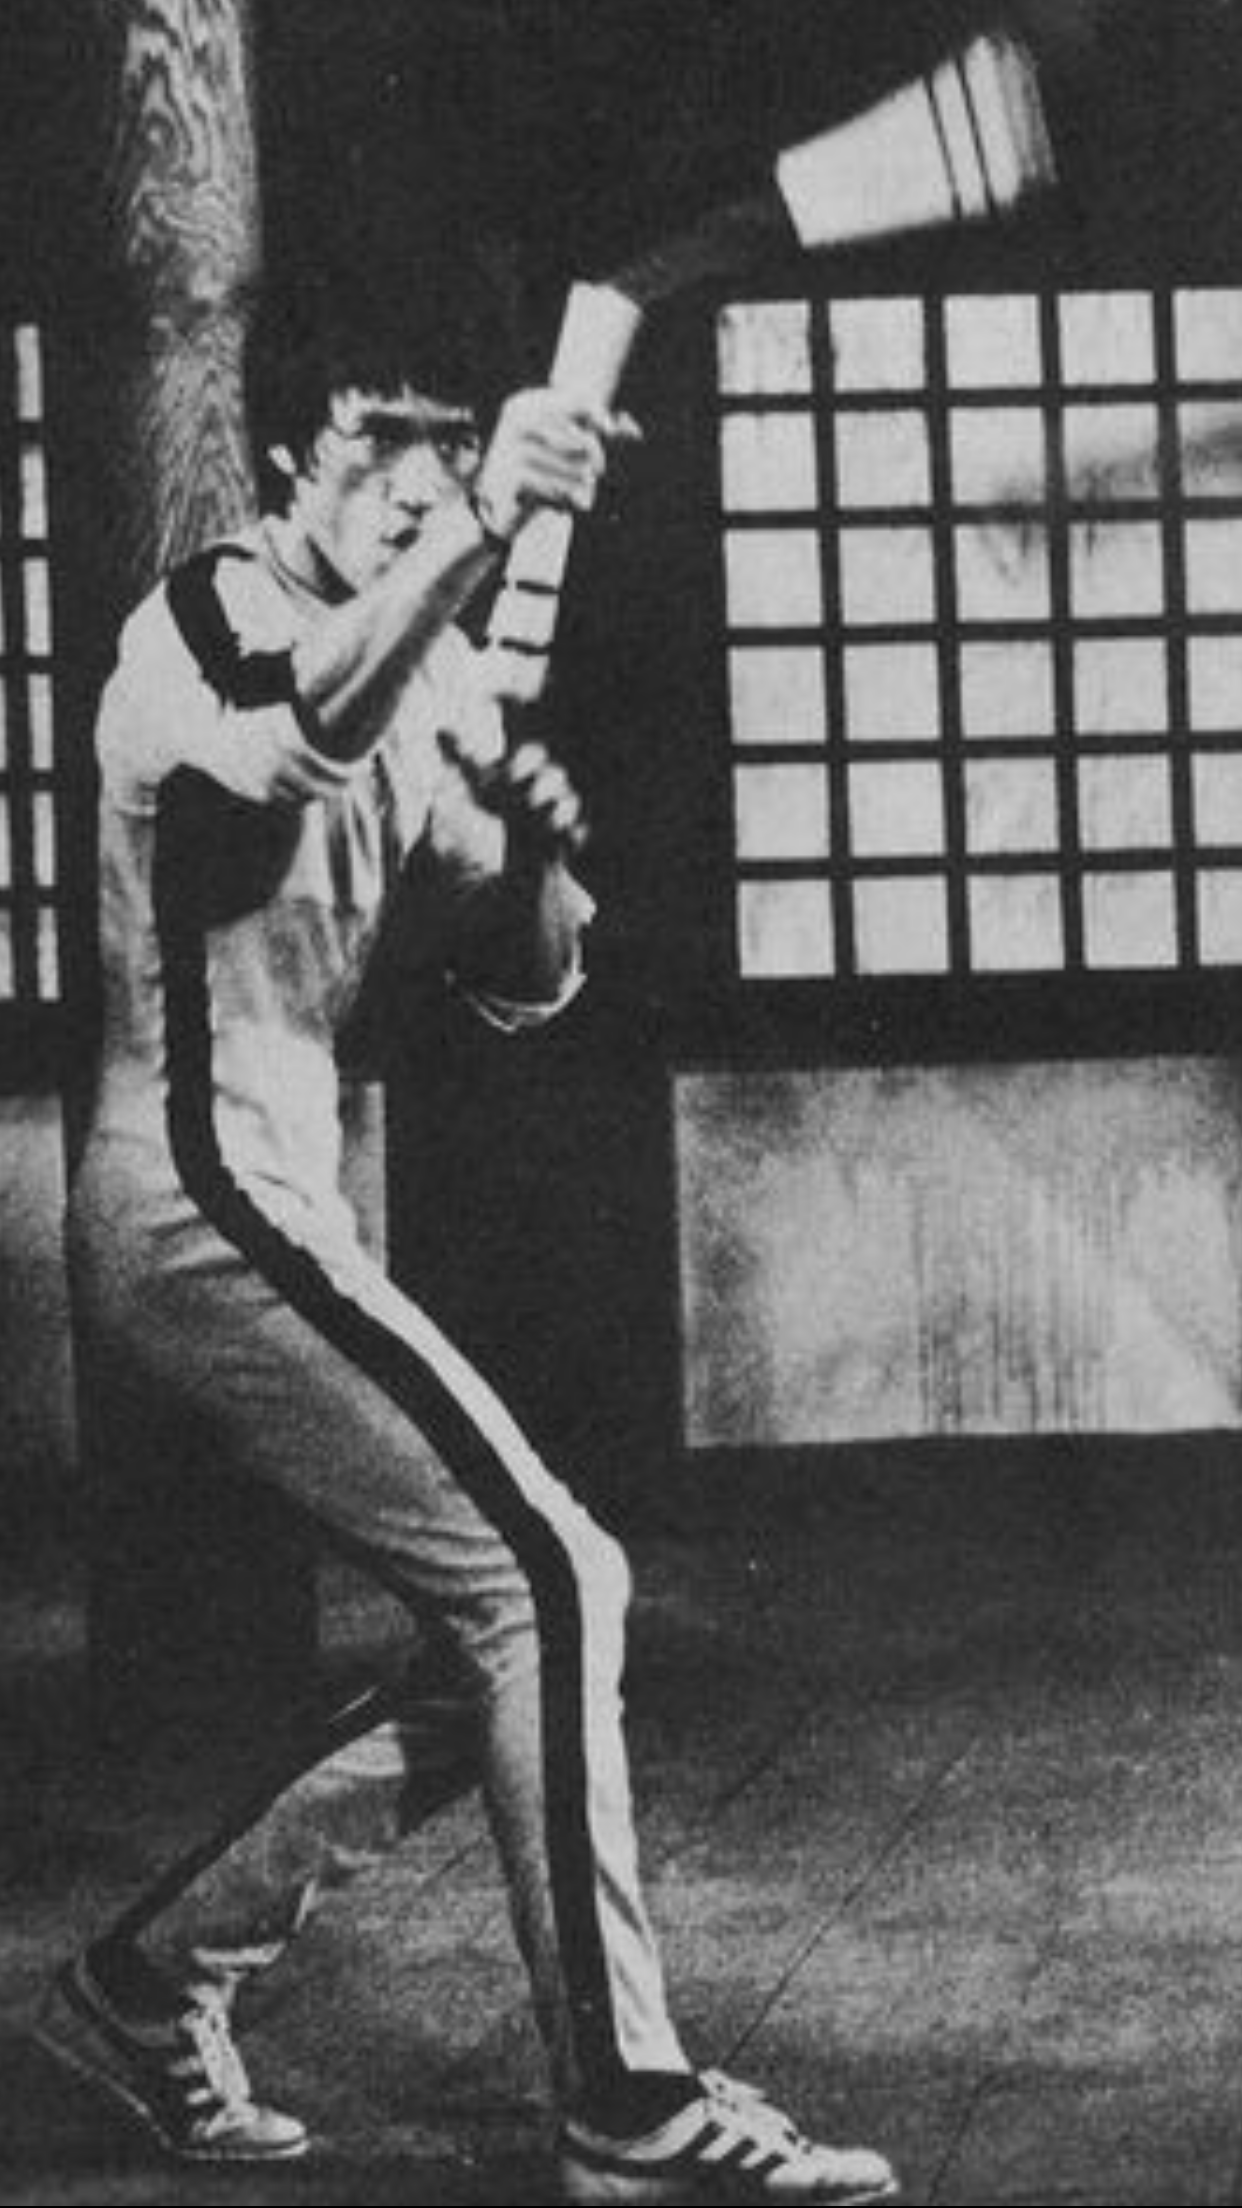 Pin by Nel Djny on Game of death (1972) (With images ...